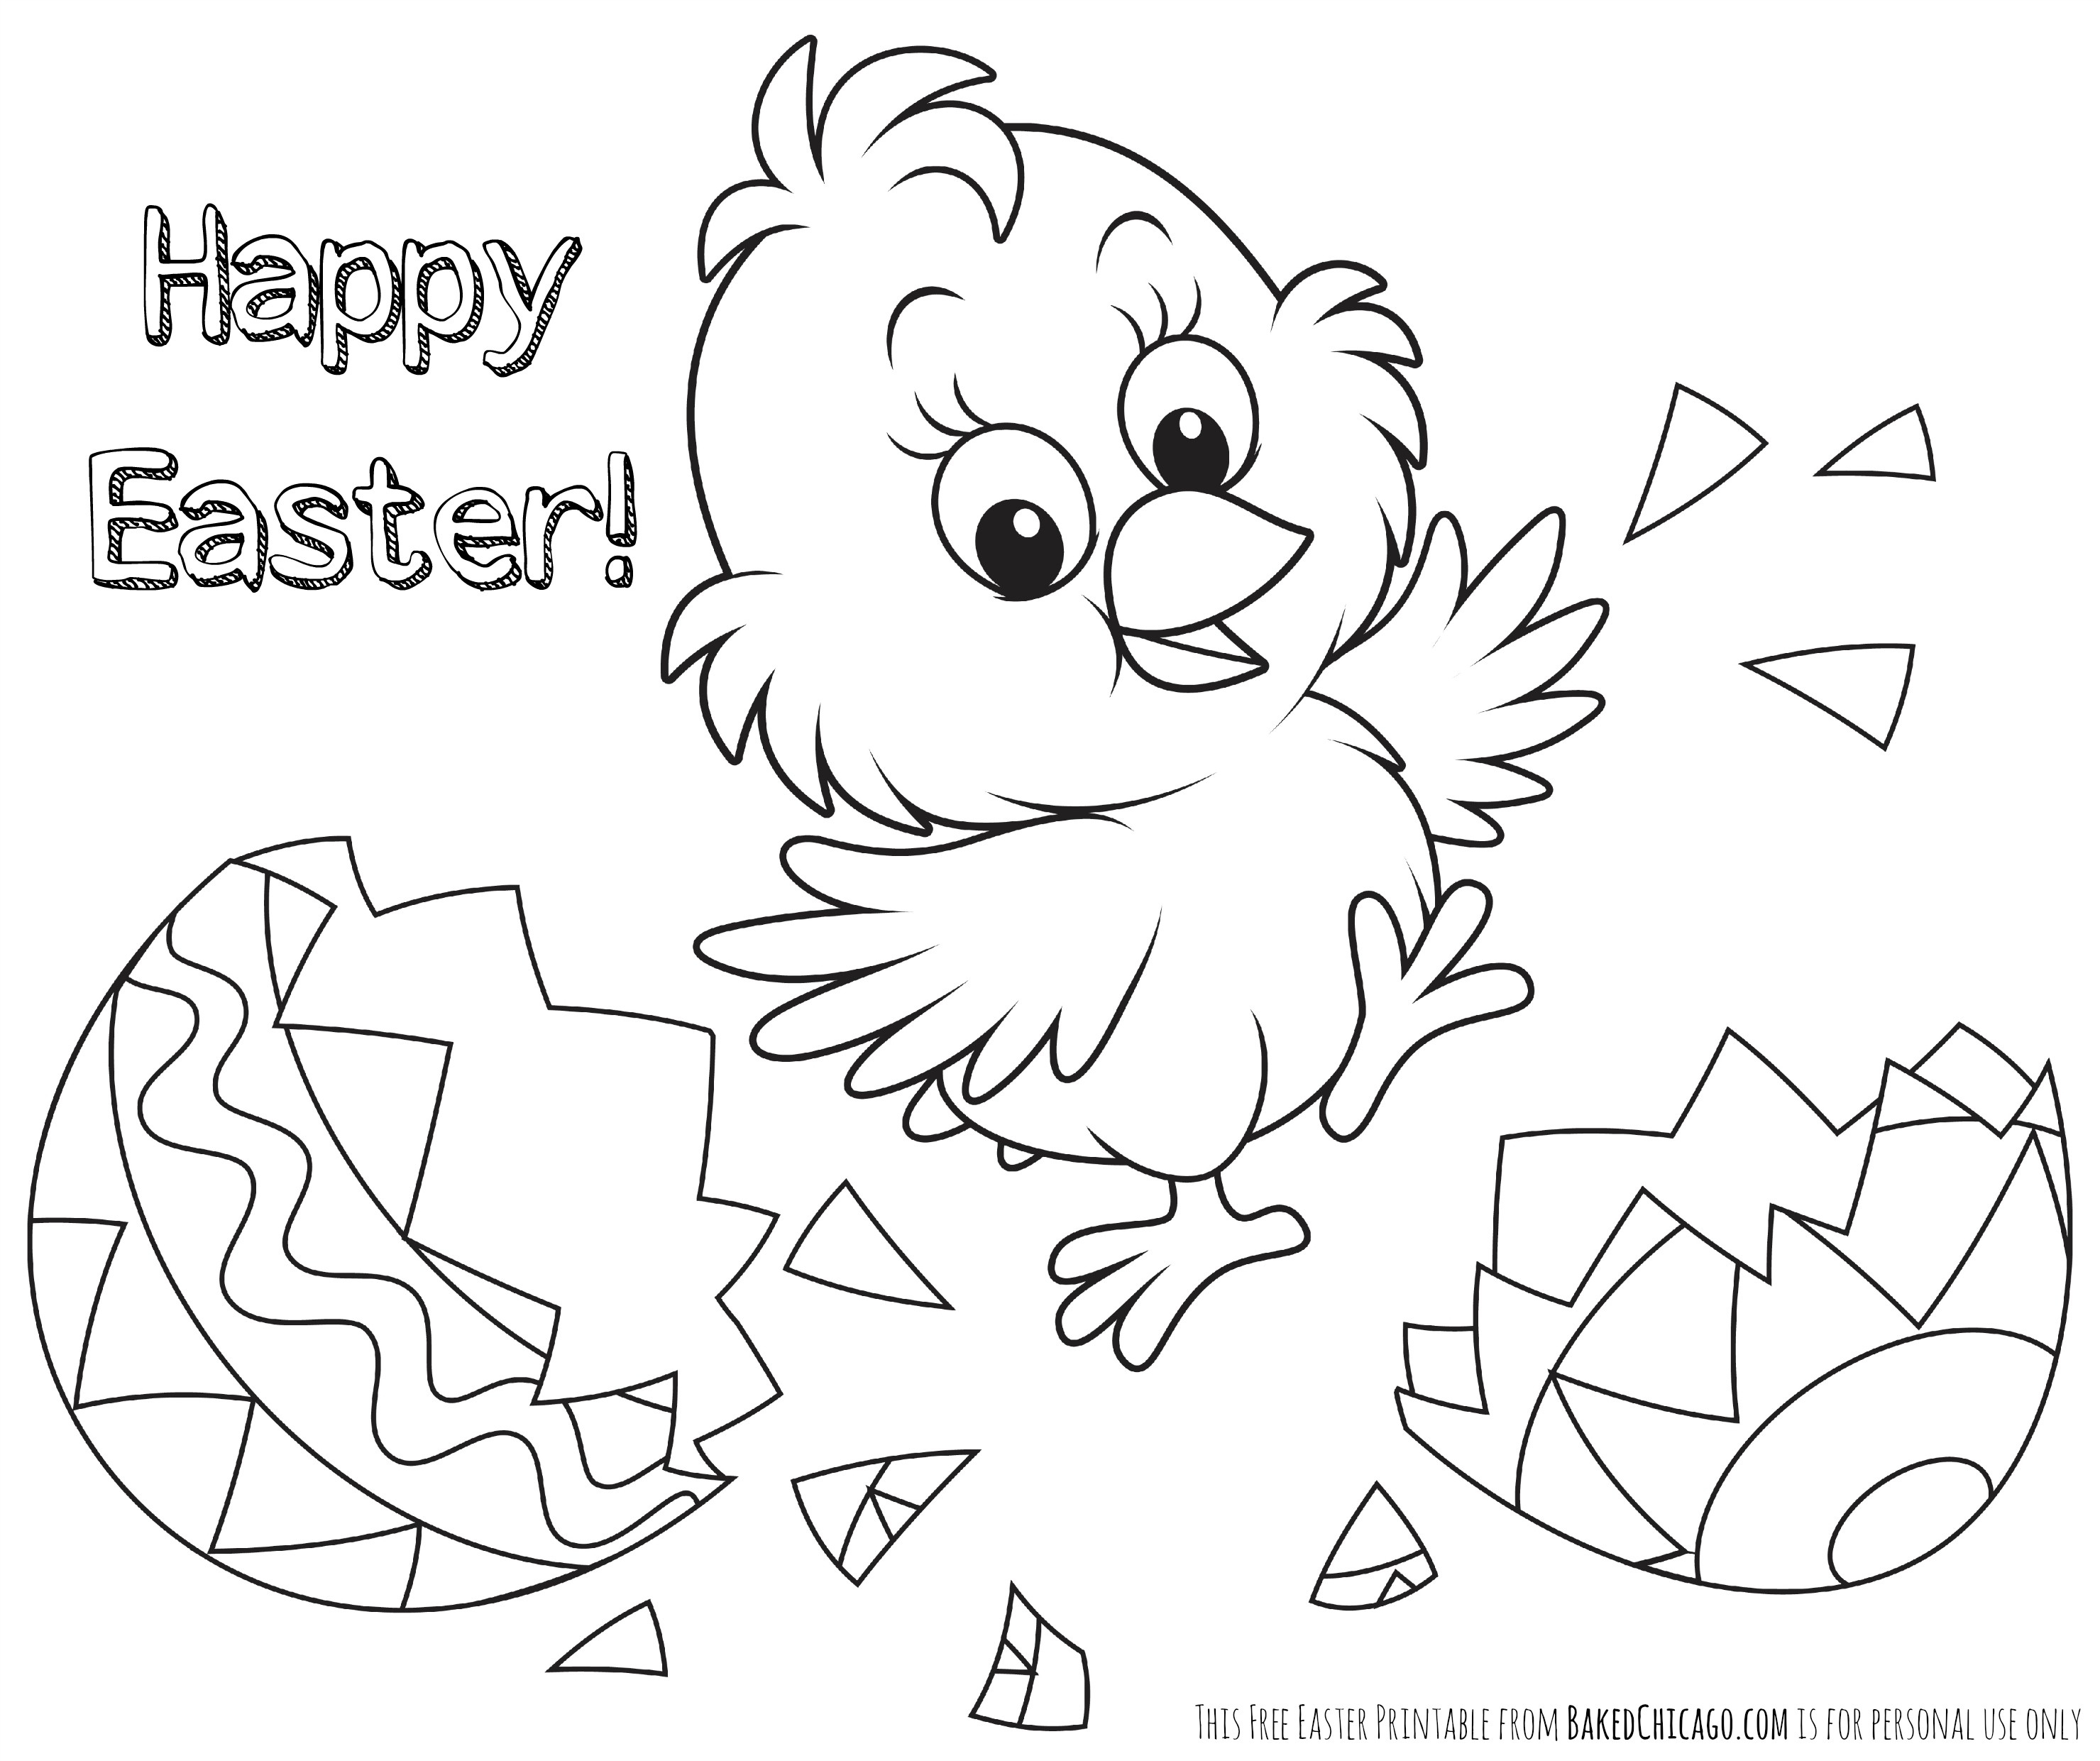 Coloring Pages : Free Easter Coloringes For Kidsfree To Print - Free Printable Easter Colouring Sheets